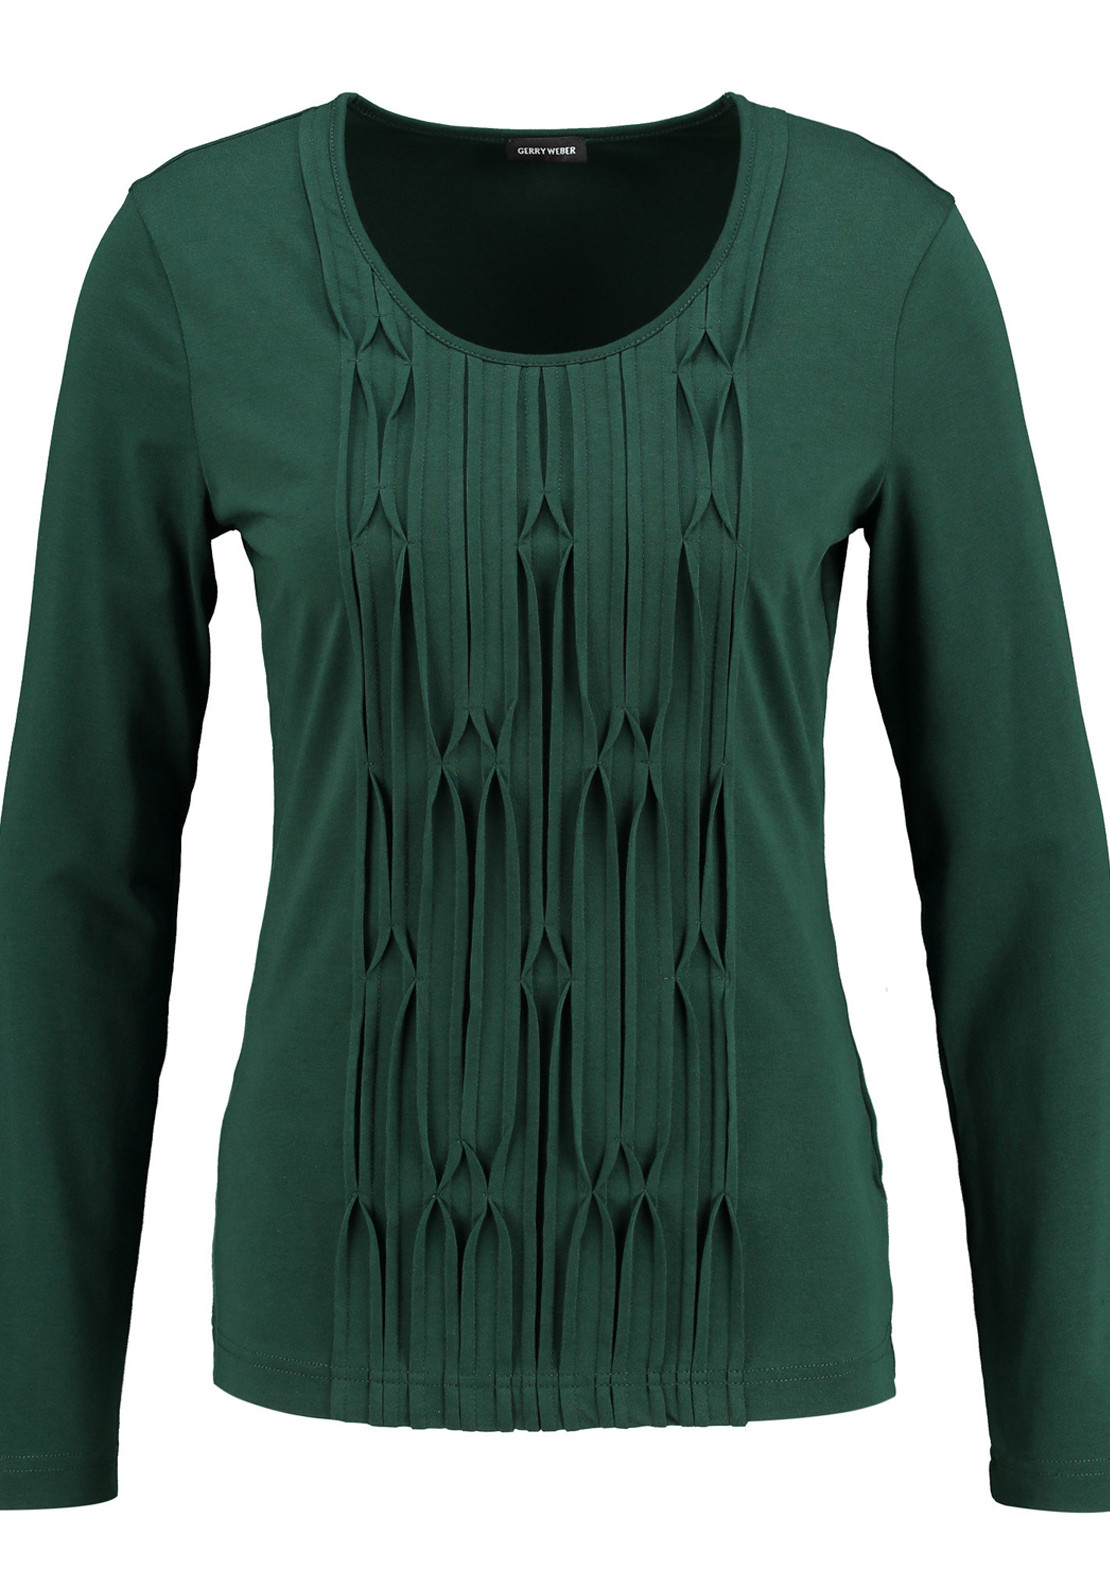 Gerry Weber Embossed Print Long Sleeve T-Shirt, Forest Green